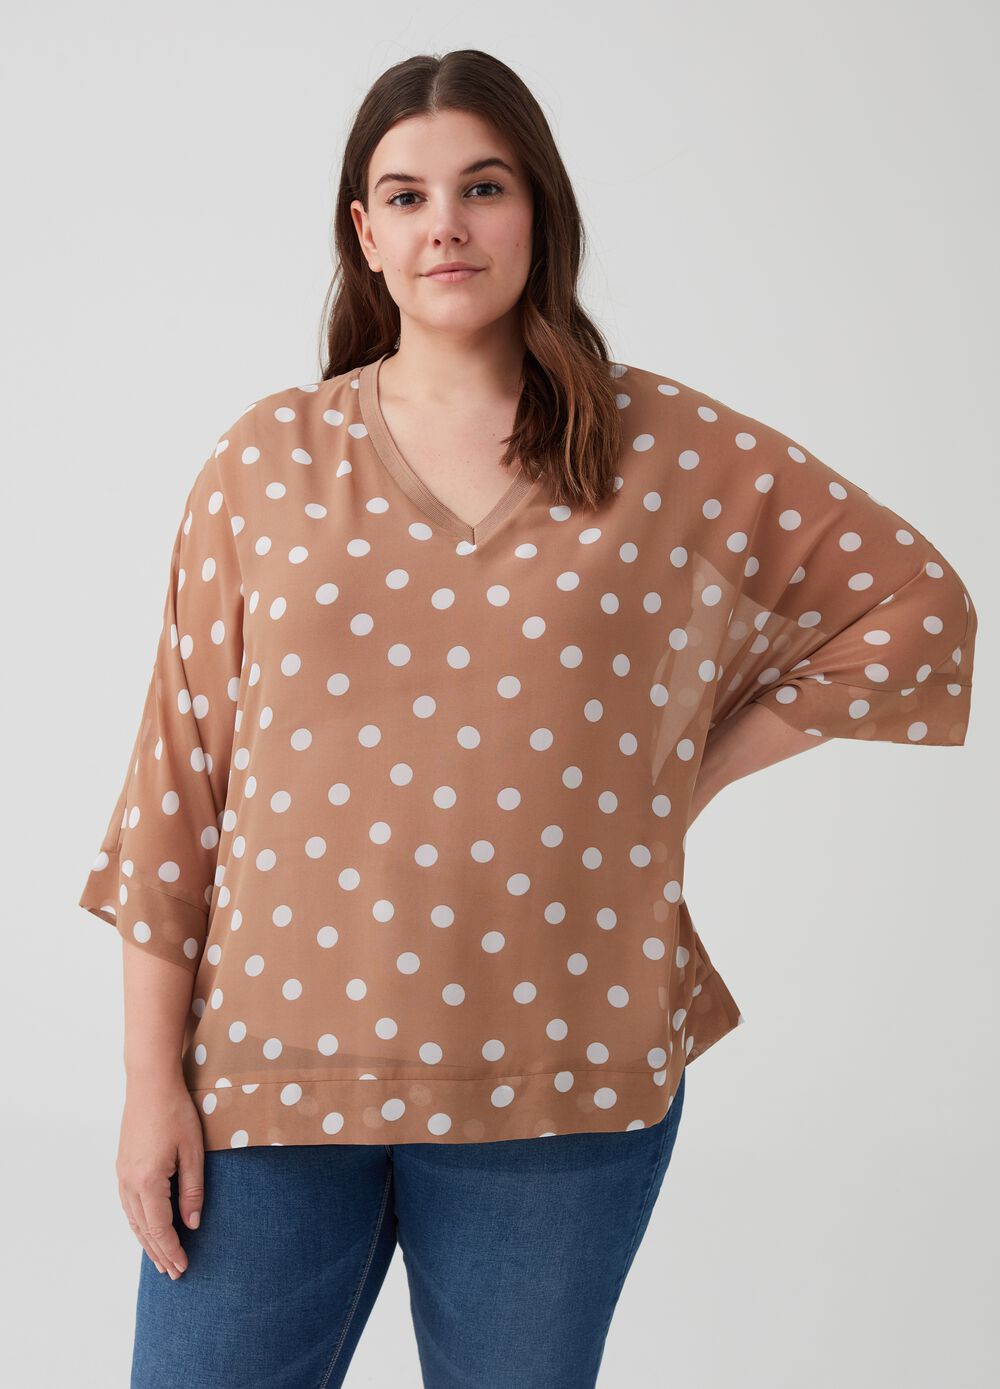 Curvy blouse with three-quarter sleeves and polka dots